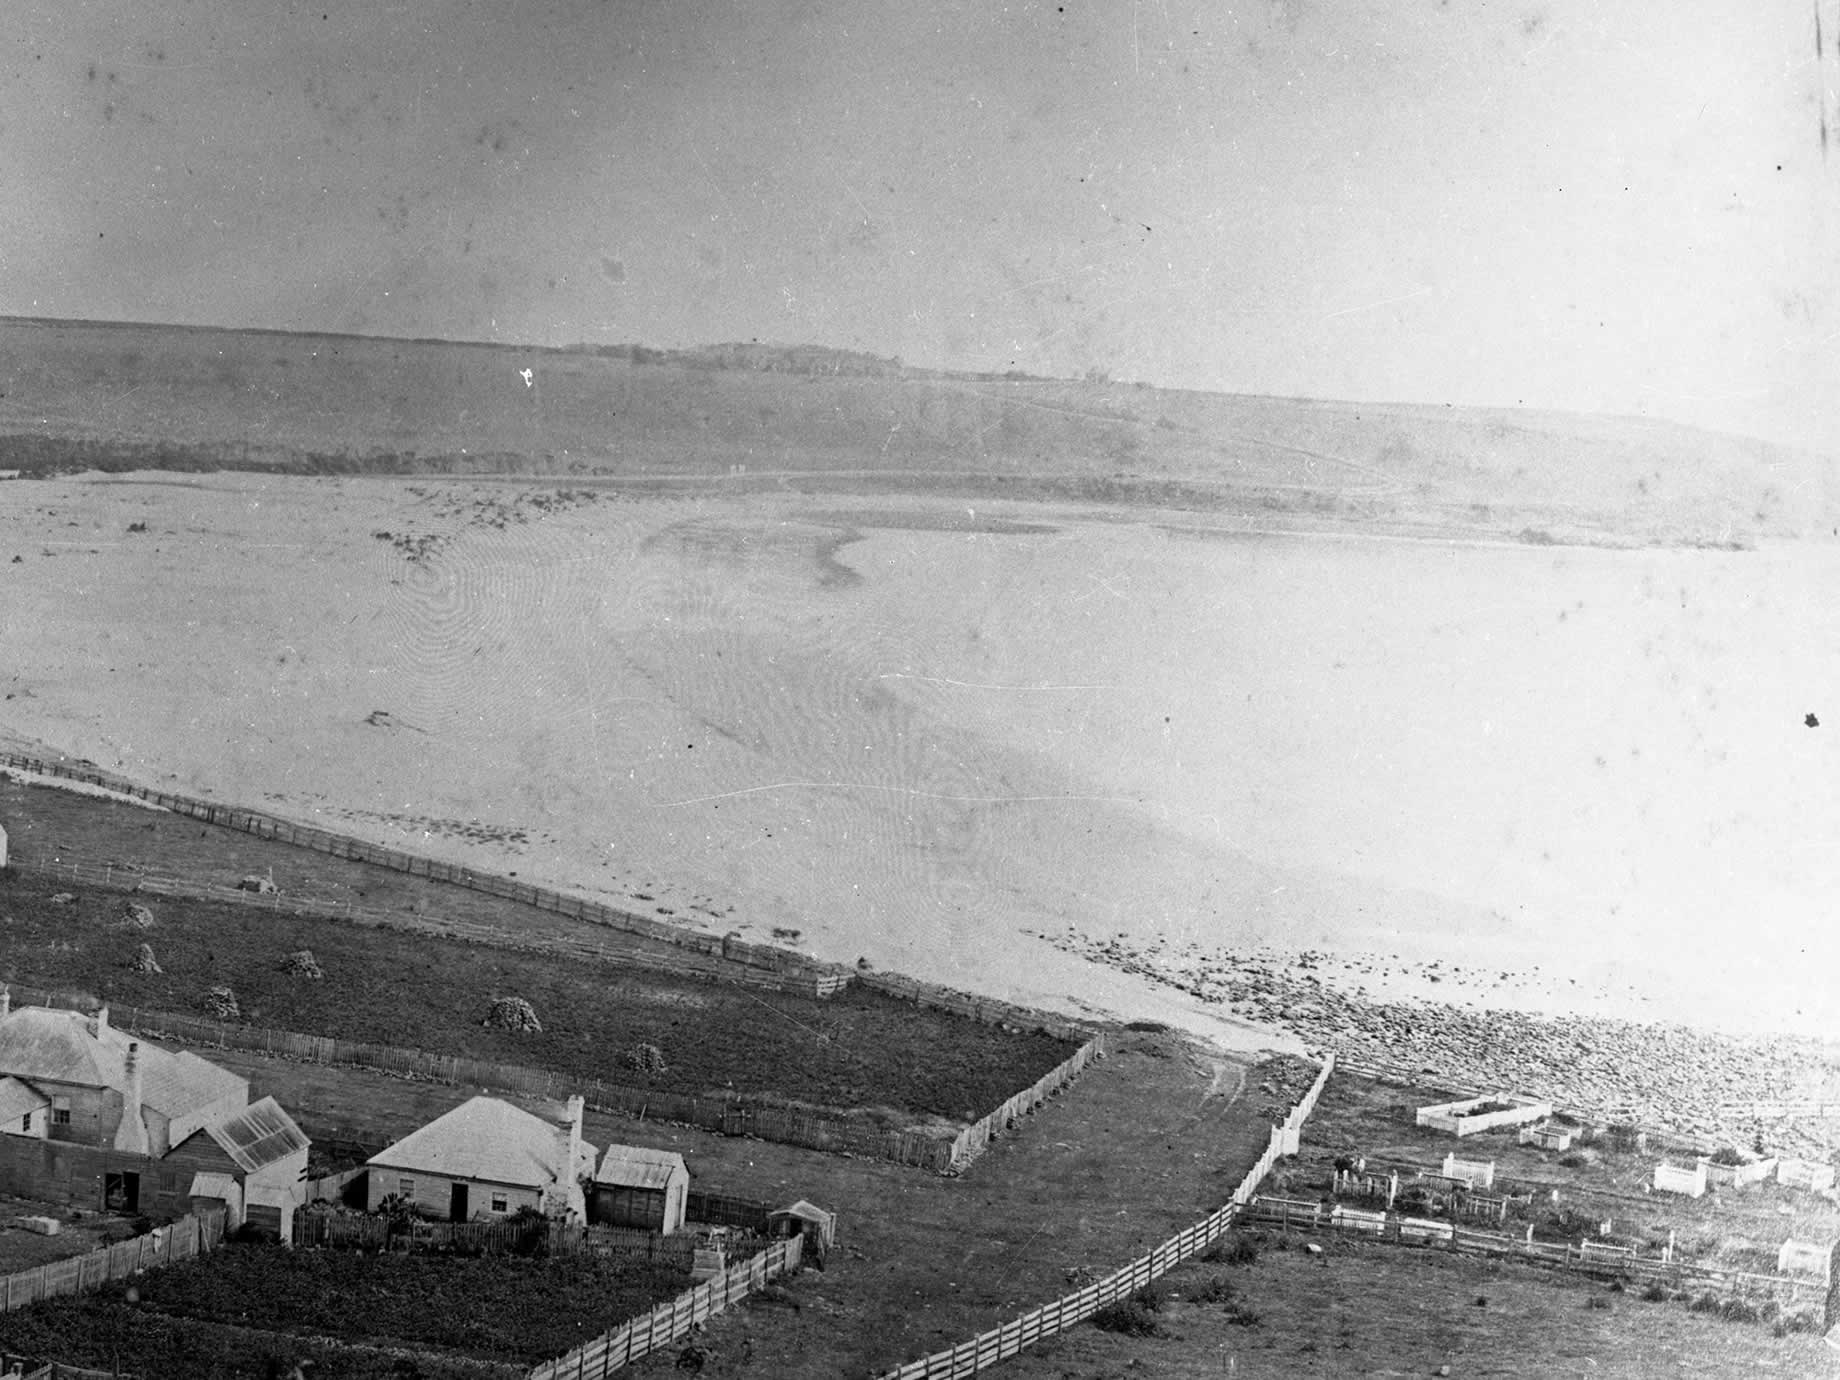 An aerial view of the Stanley Burial Ground near Godfrey's beach